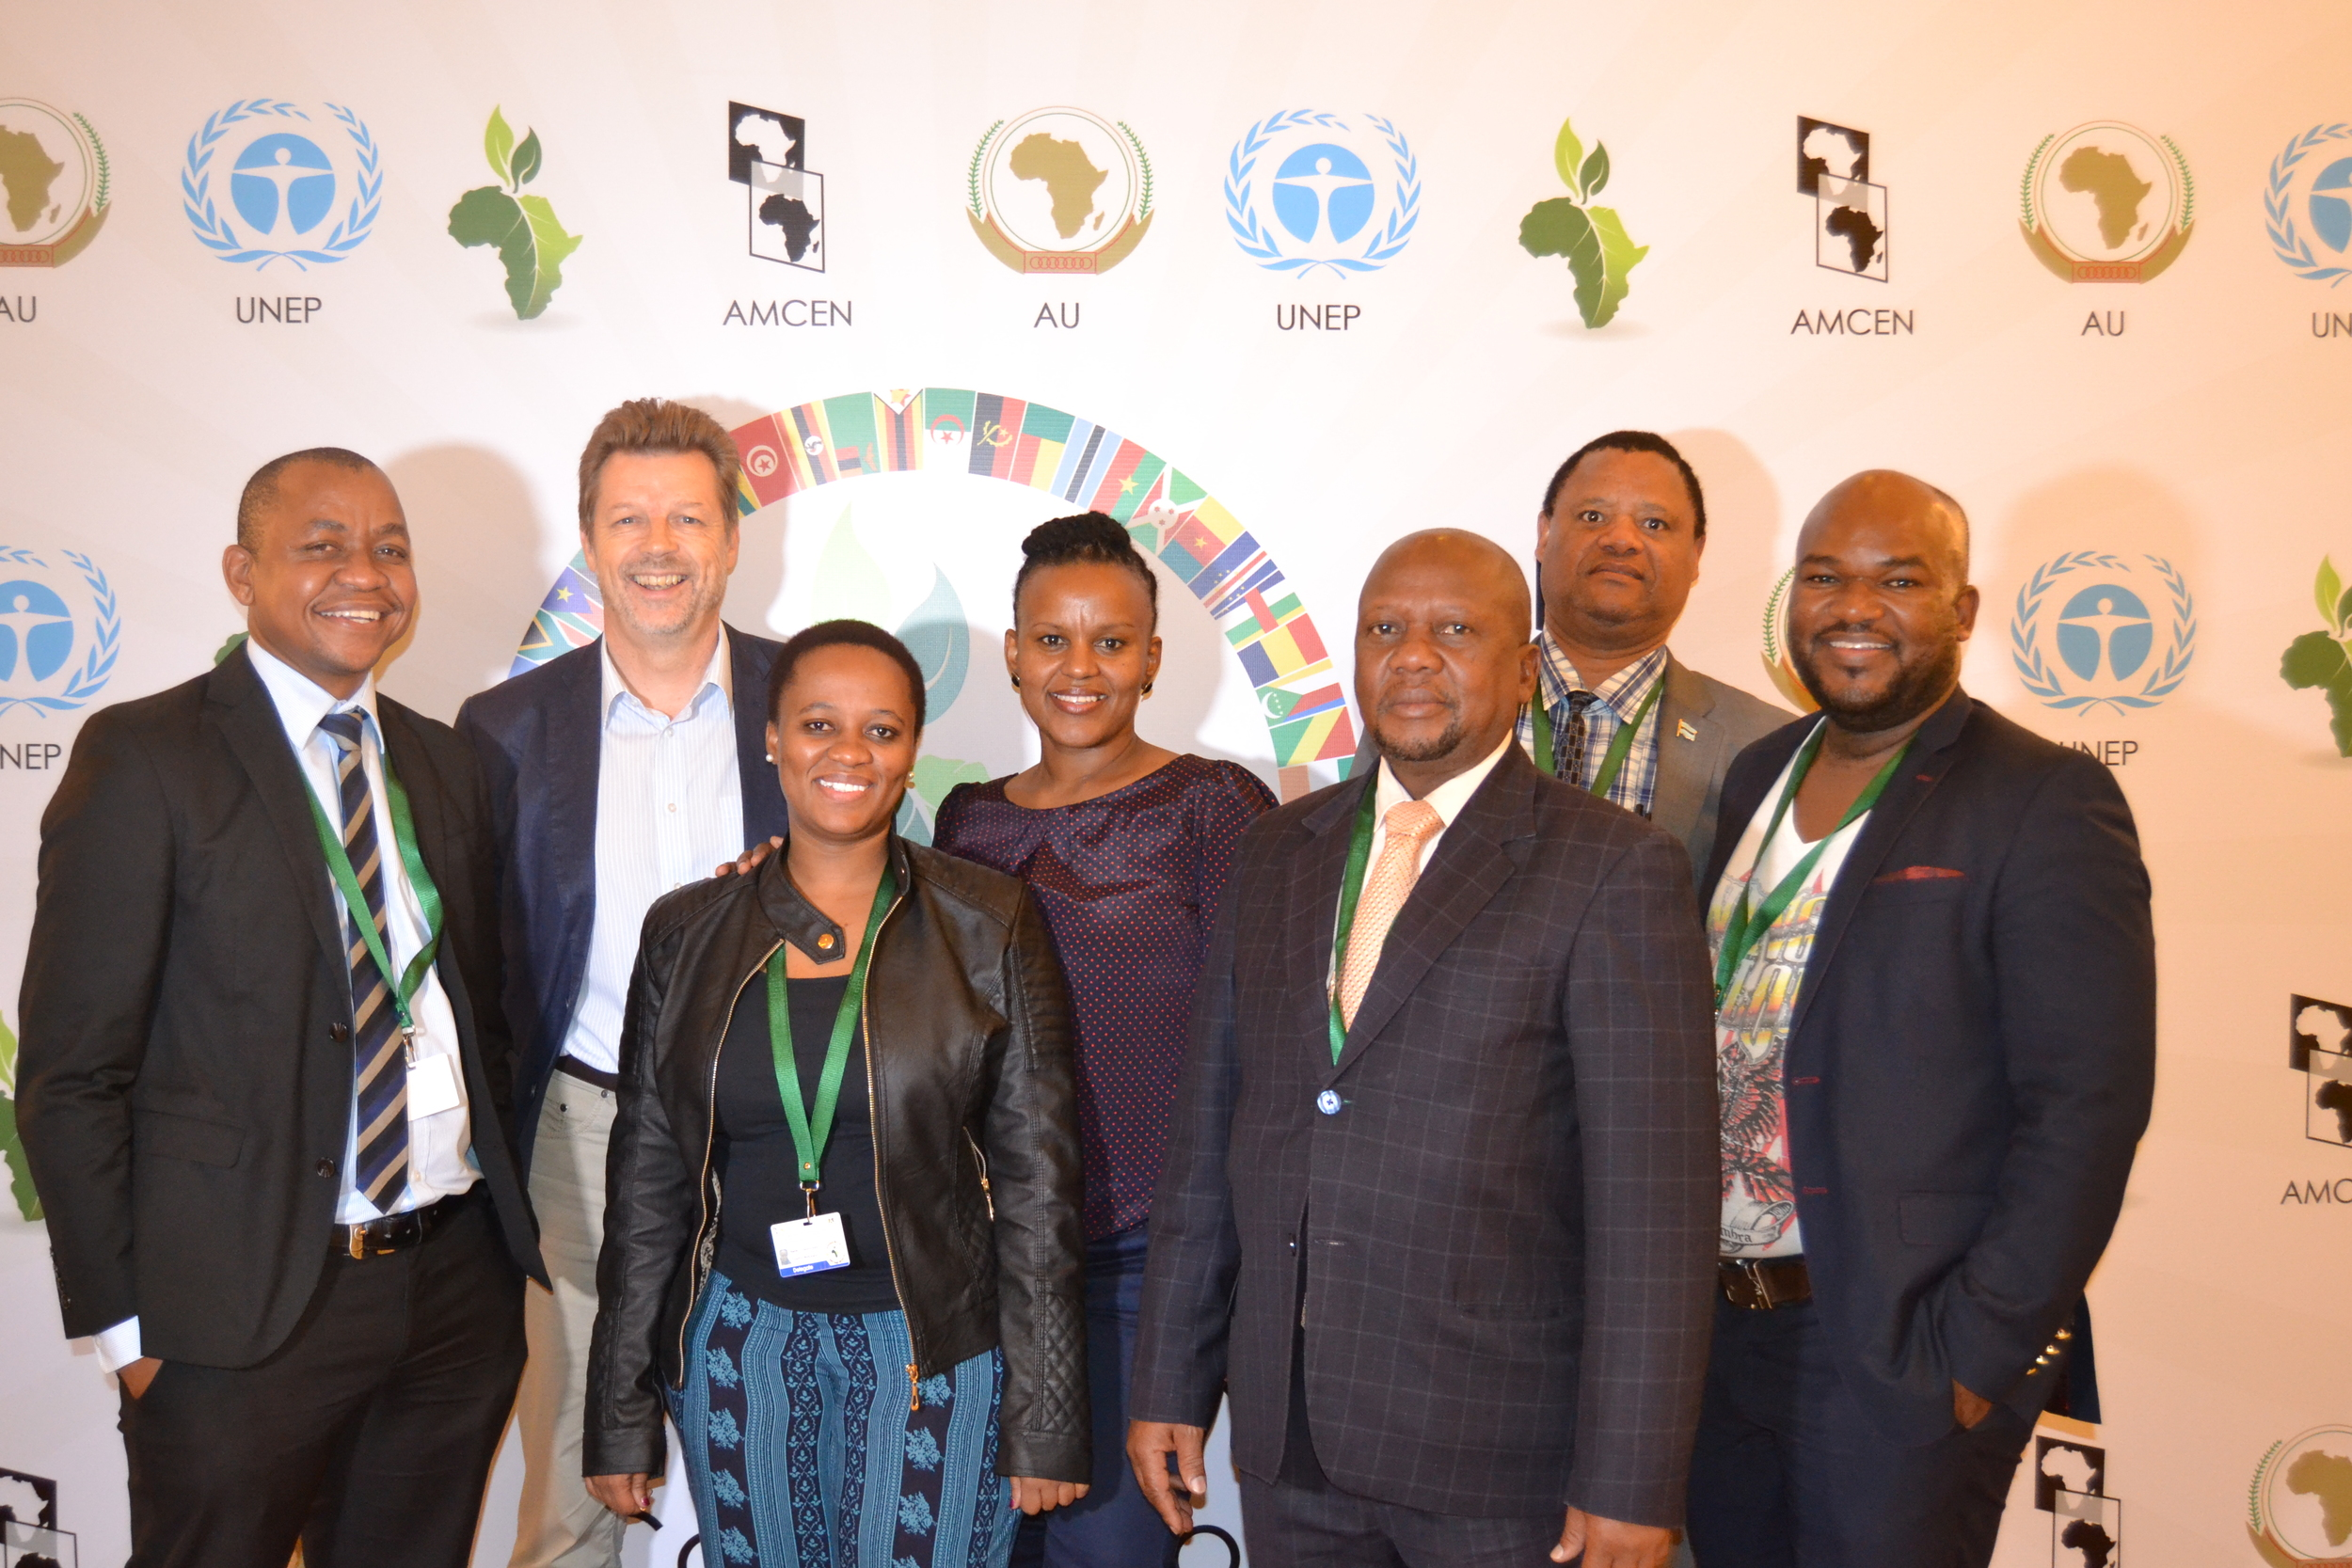 botswana and gdsa delegates to amcen's 6th special session. photo by tiego mpho